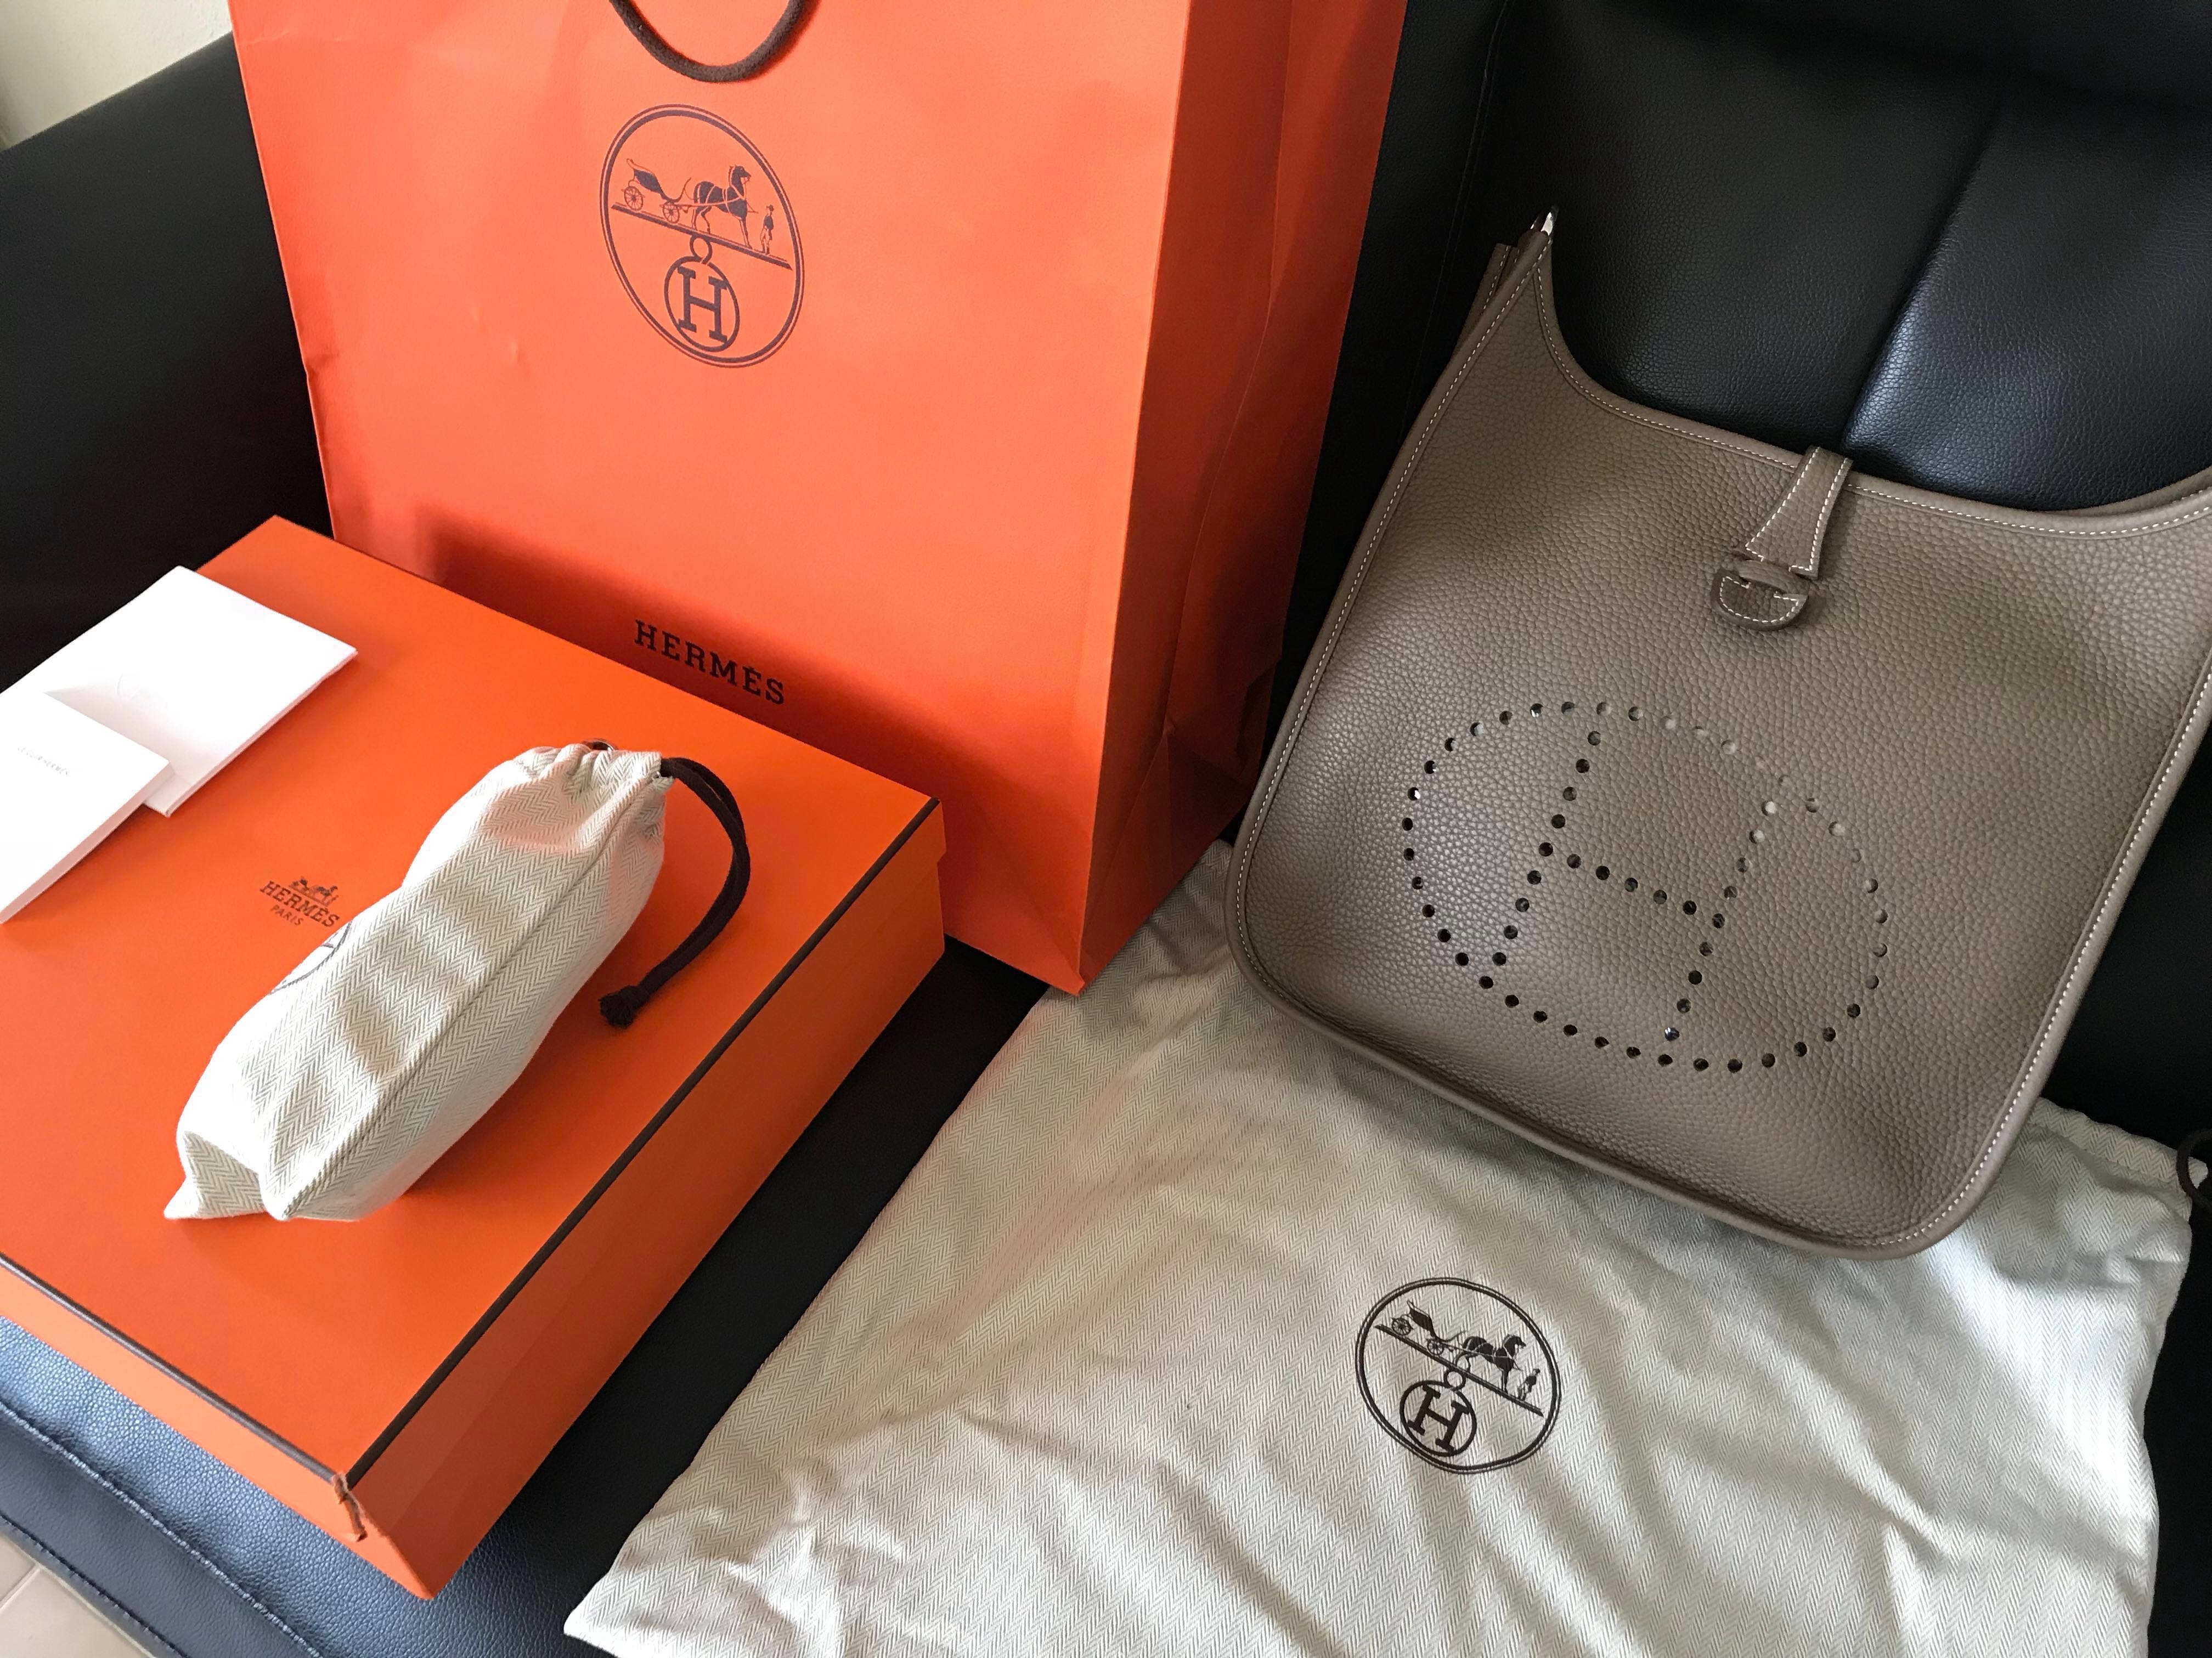 d0489d3d729a BNIB Authentic Hermes Evelyne III 29 Bag